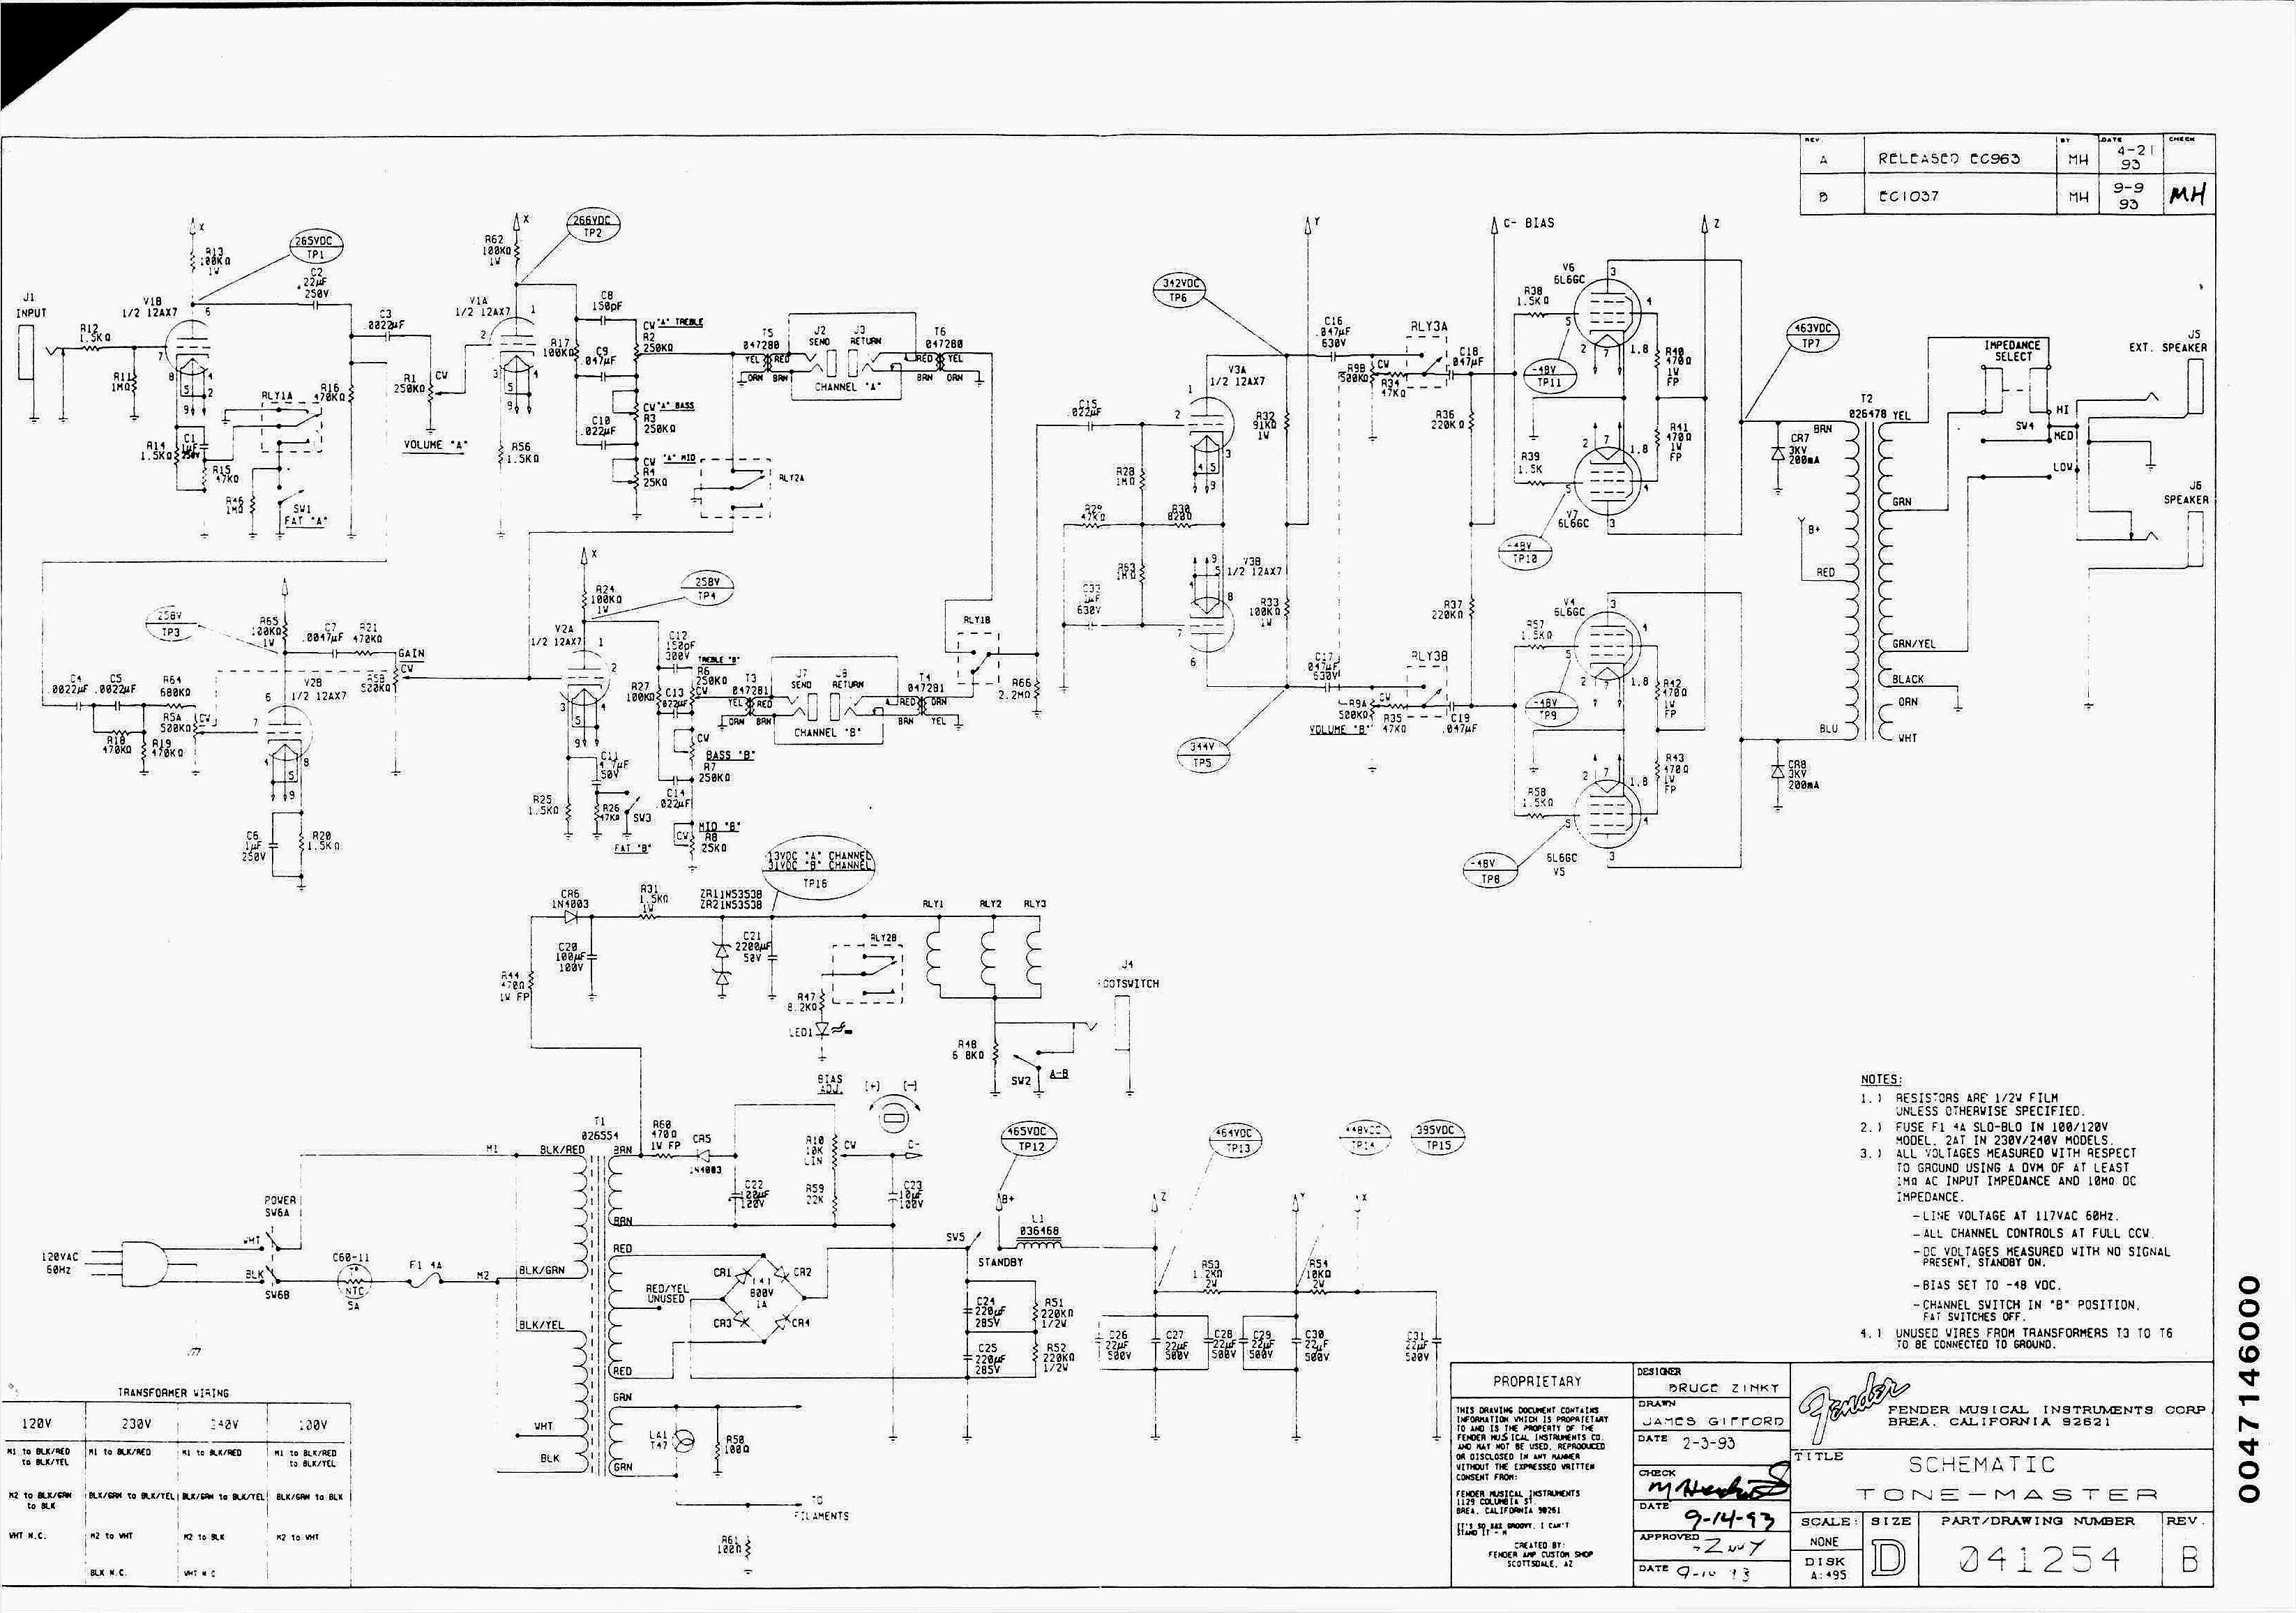 Results Page 420 About Speed Control Of Motor Searching Circuits Frequencycounterpreamp Schematic Blue Guitar Schematics